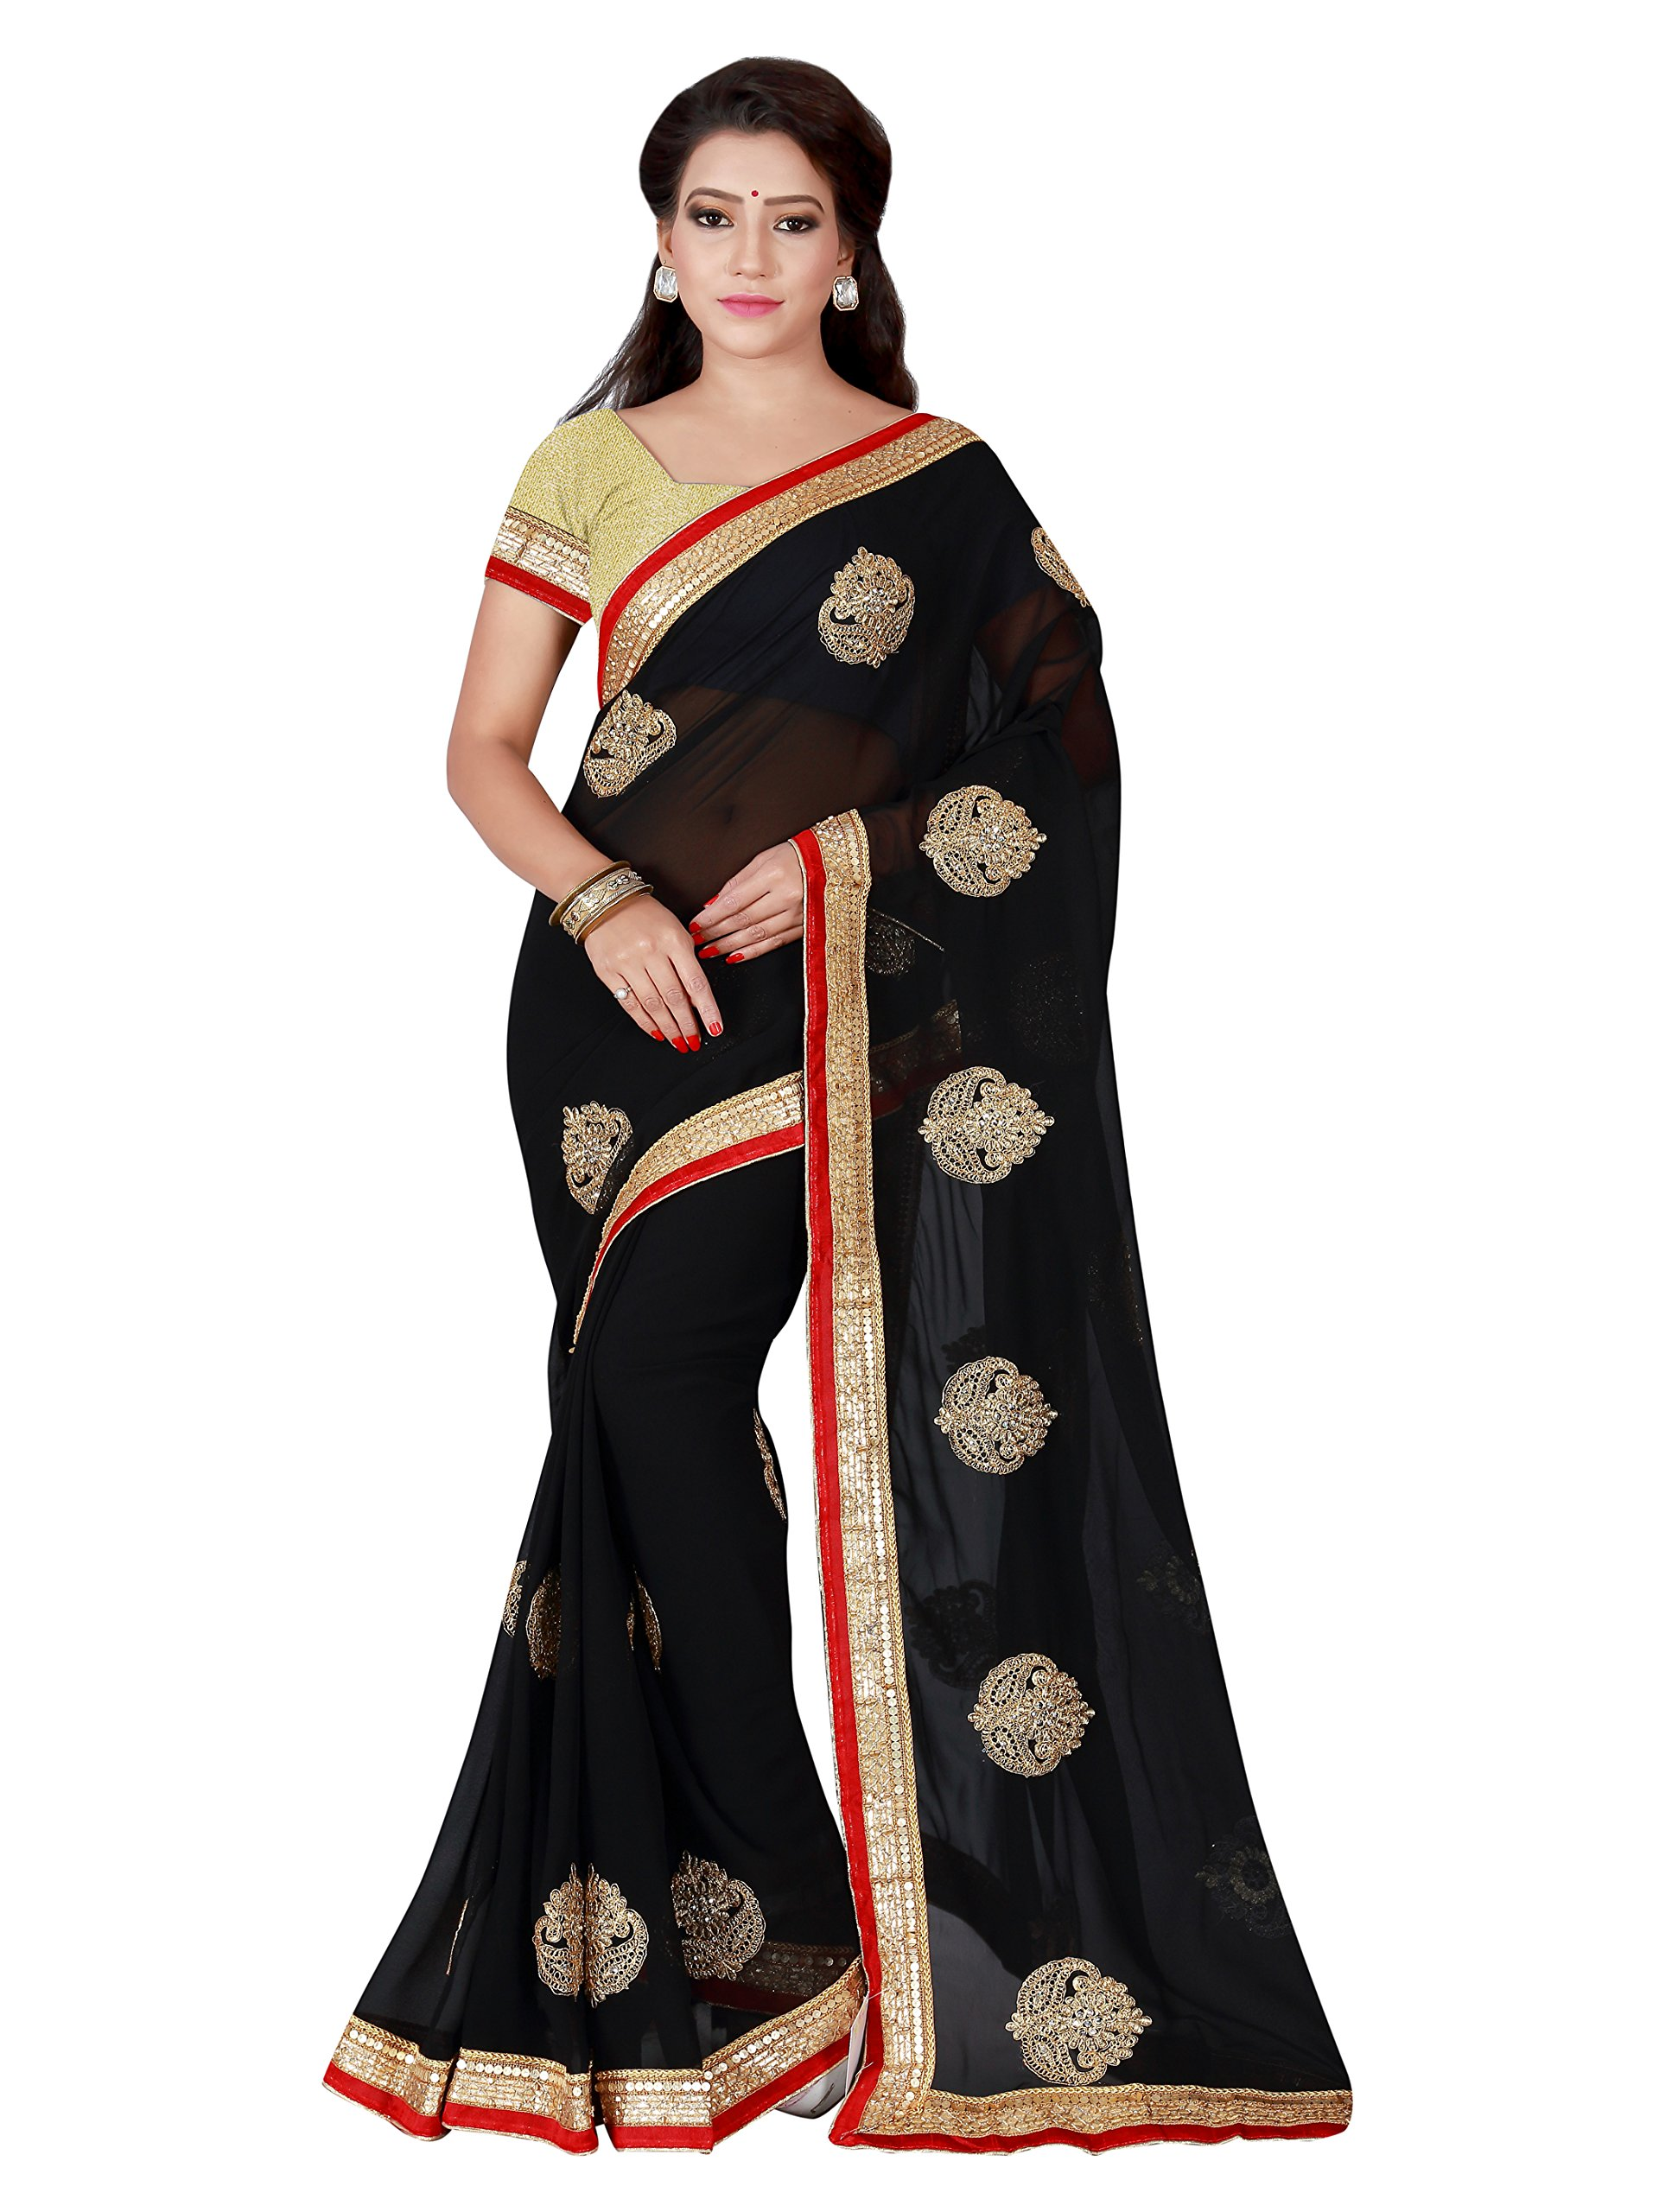 818ec75a40296 Women s Party Wear Butti   Patch Work Half   Half Saree With Unstitched  Blouse